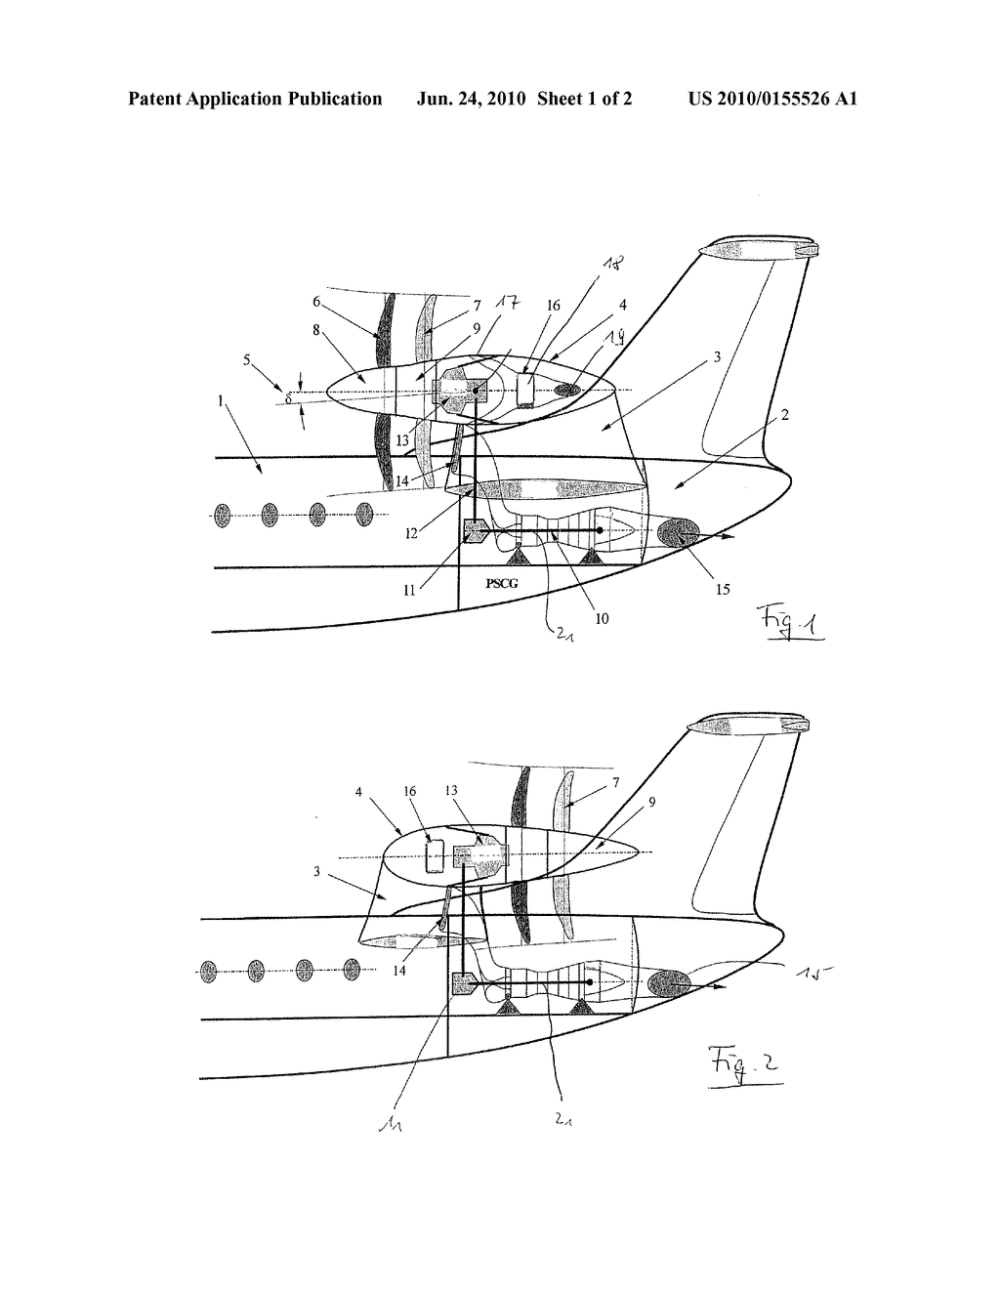 medium resolution of aircraft with tail propeller engine layout diagram schematic and image 02